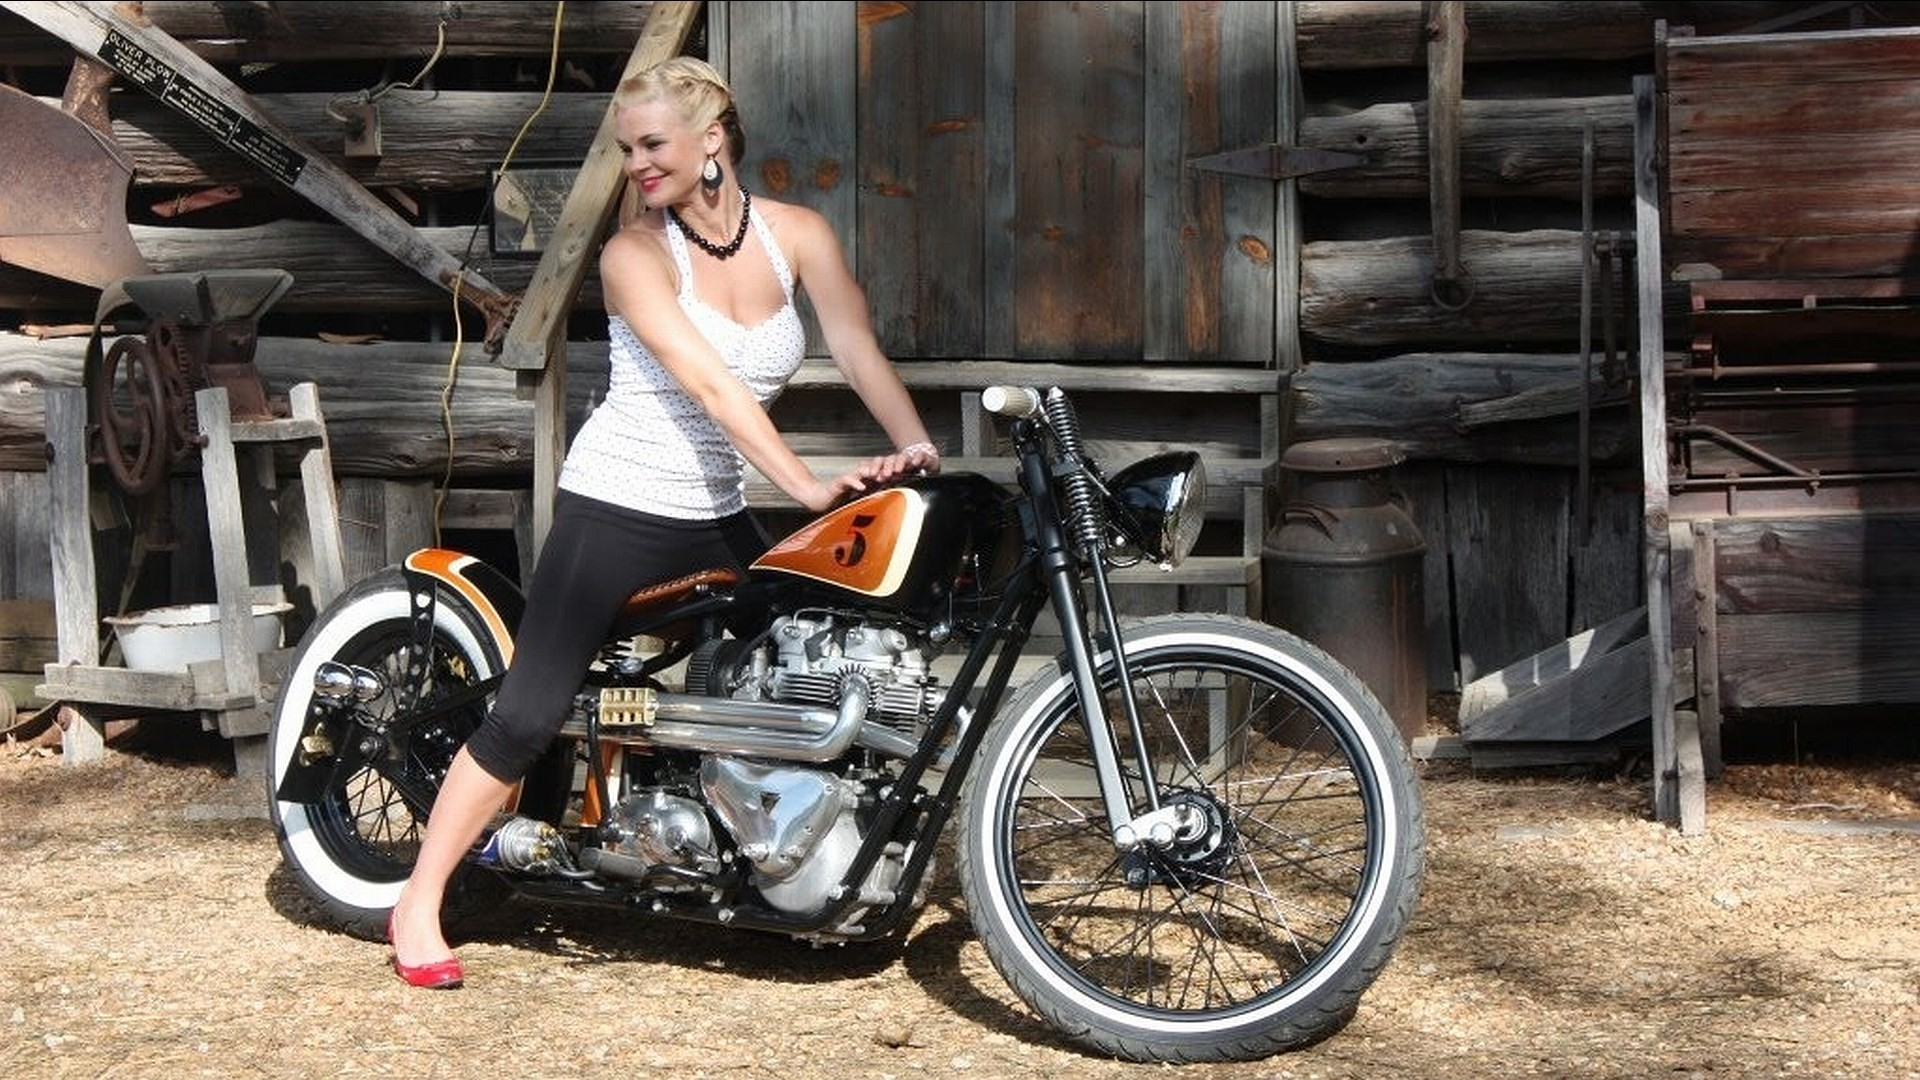 Hd wallpapers motorcycles and girls 70 images 1920x1080 rockstar energy harley davidson girls picture sciox Image collections